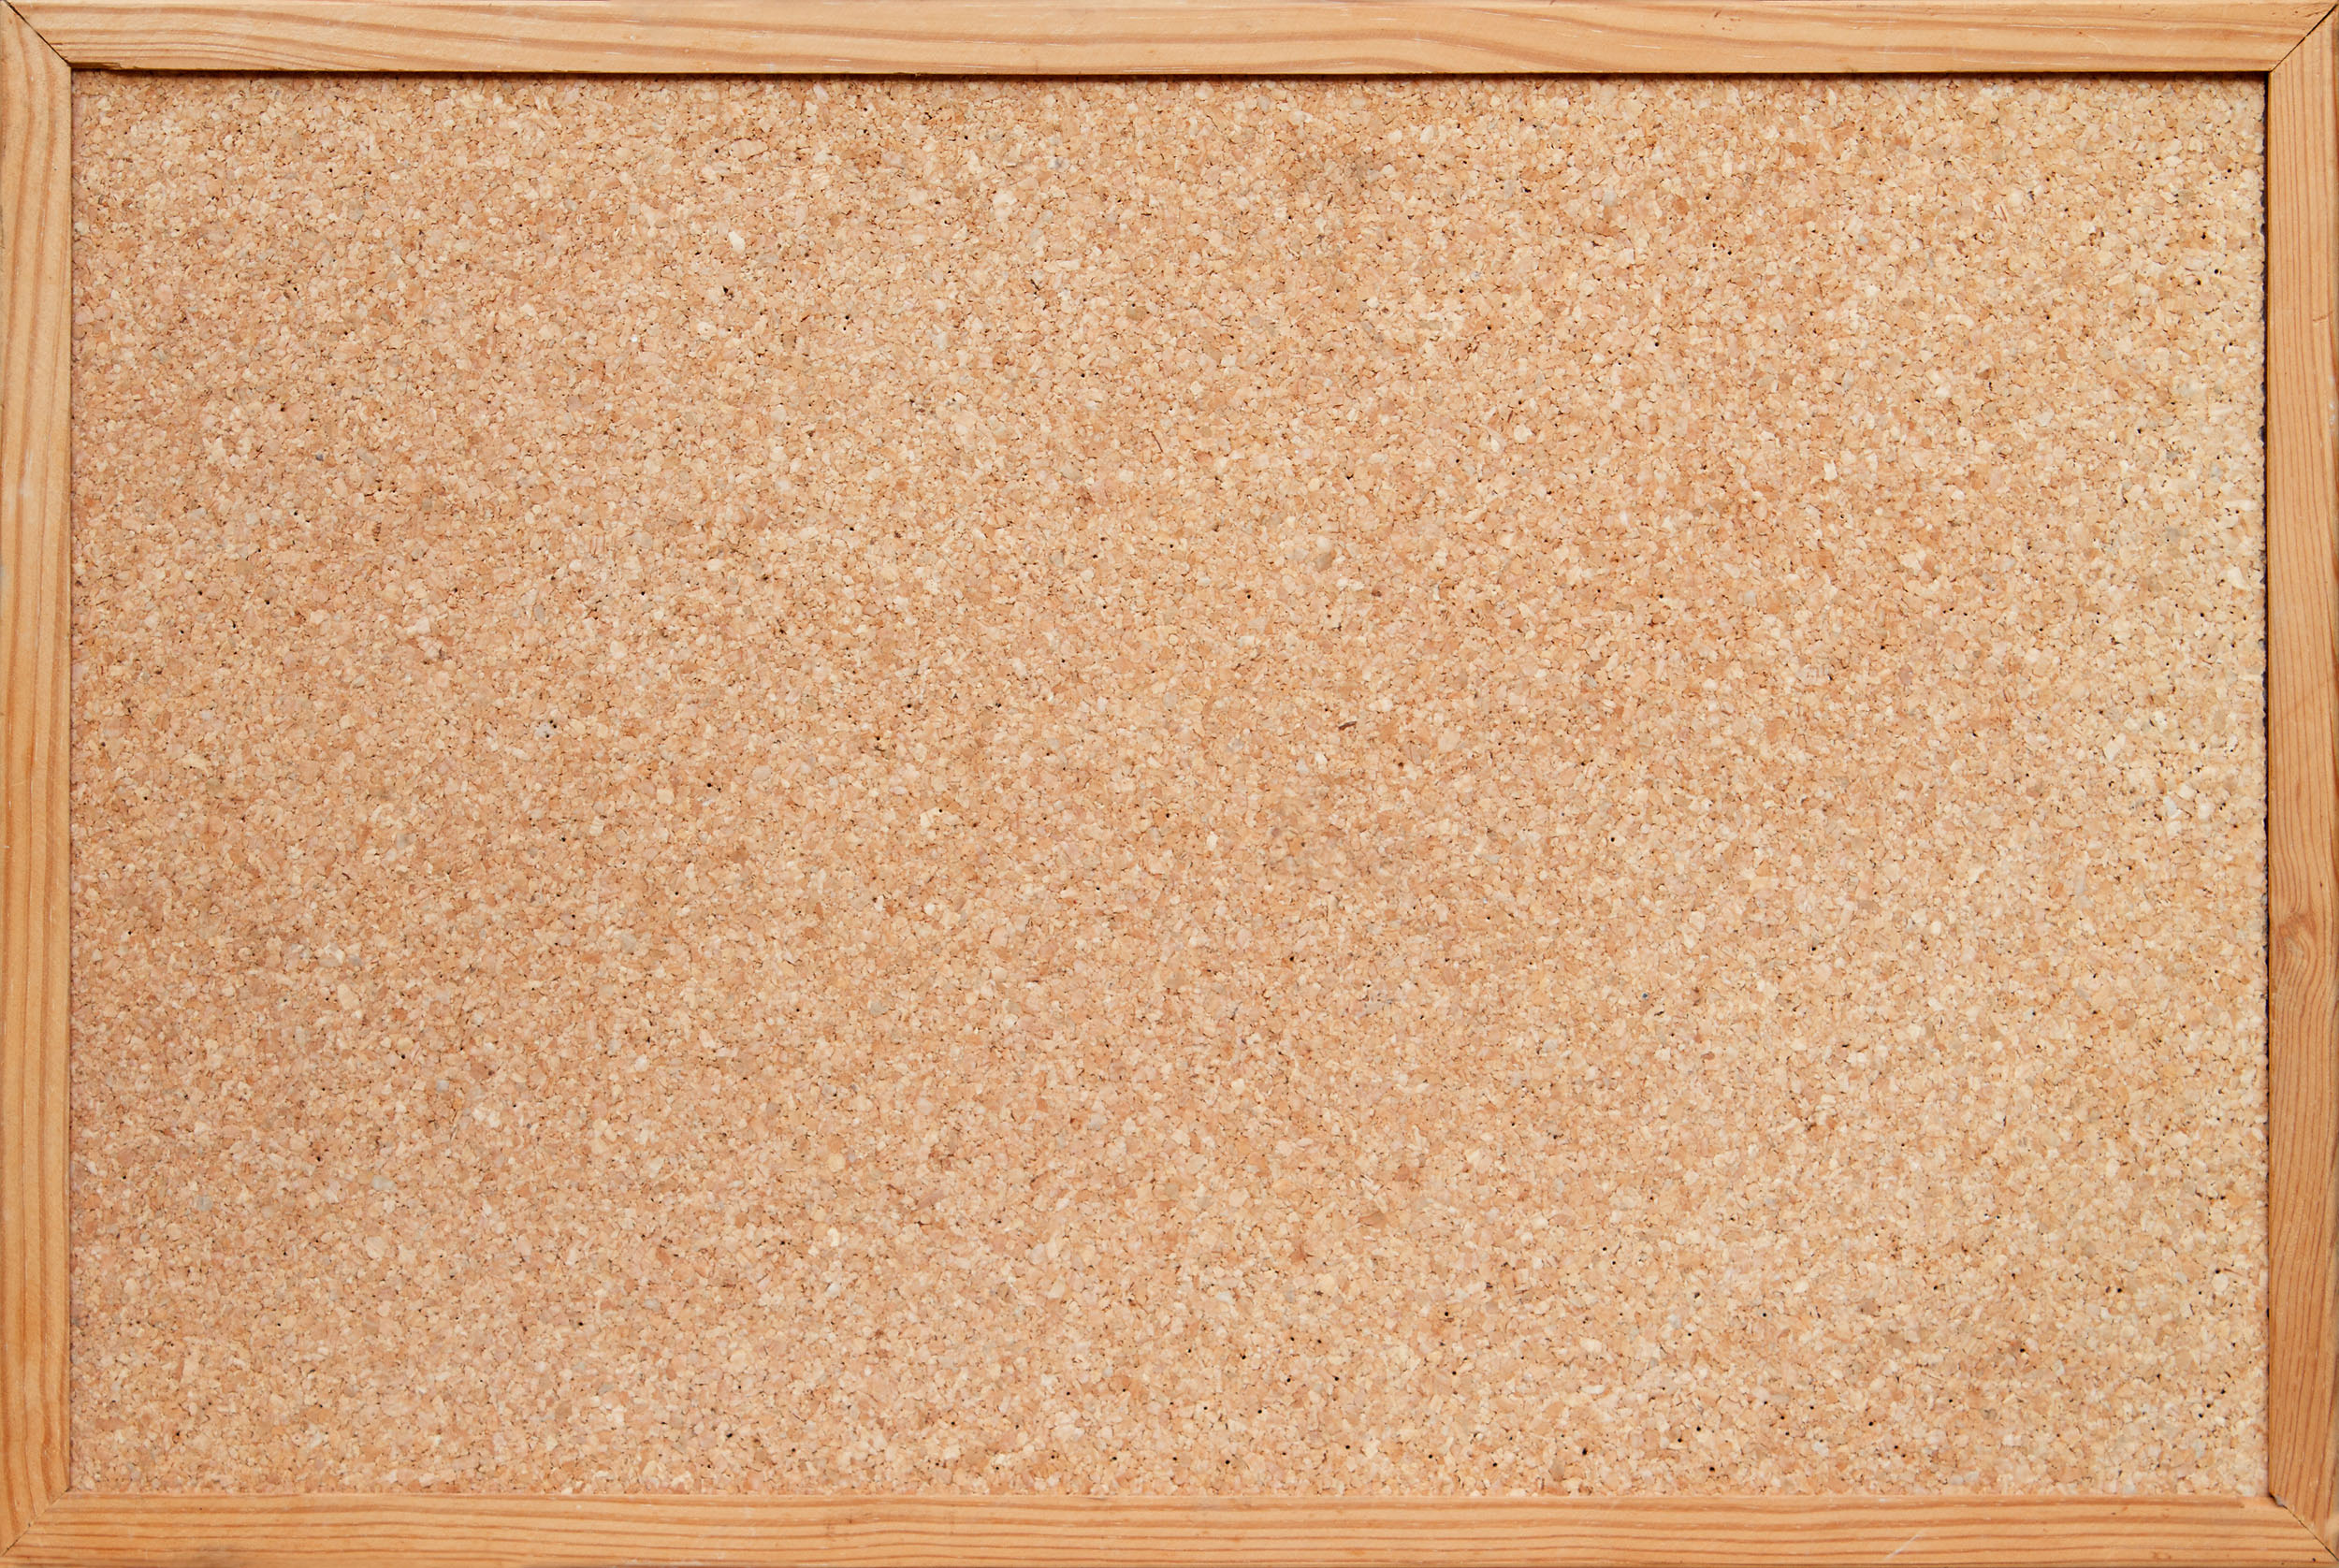 Cork Board Png (105+ images in Collection) Page 3.